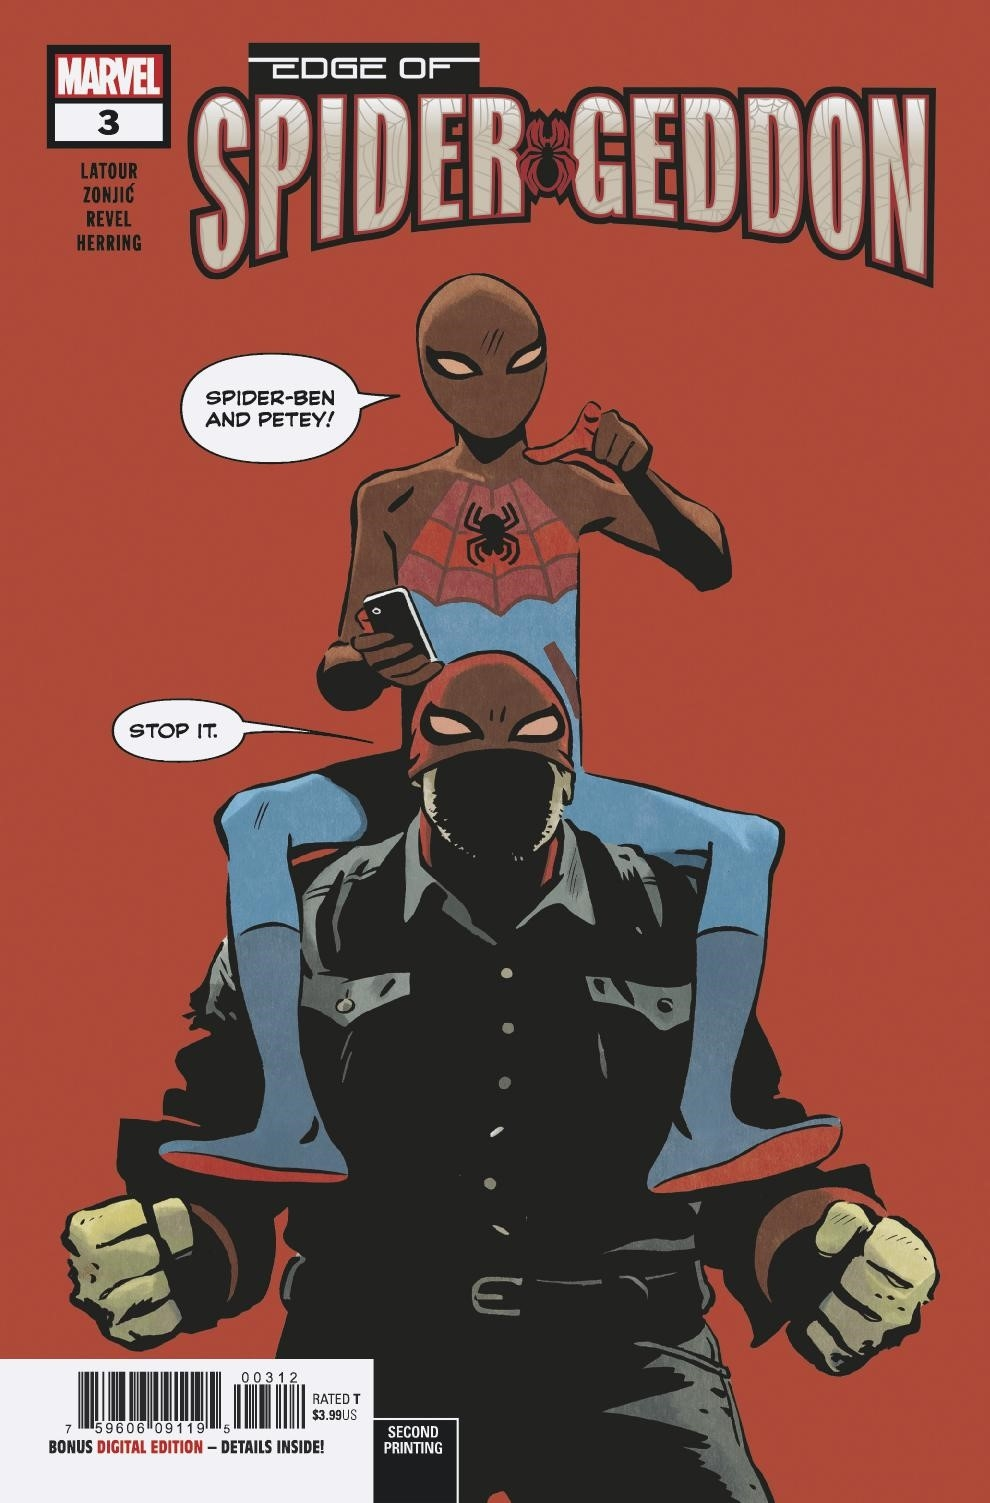 EDGE OF SPIDER-GEDDON #3 (OF 4) 2ND PTG ZONJIC VAR